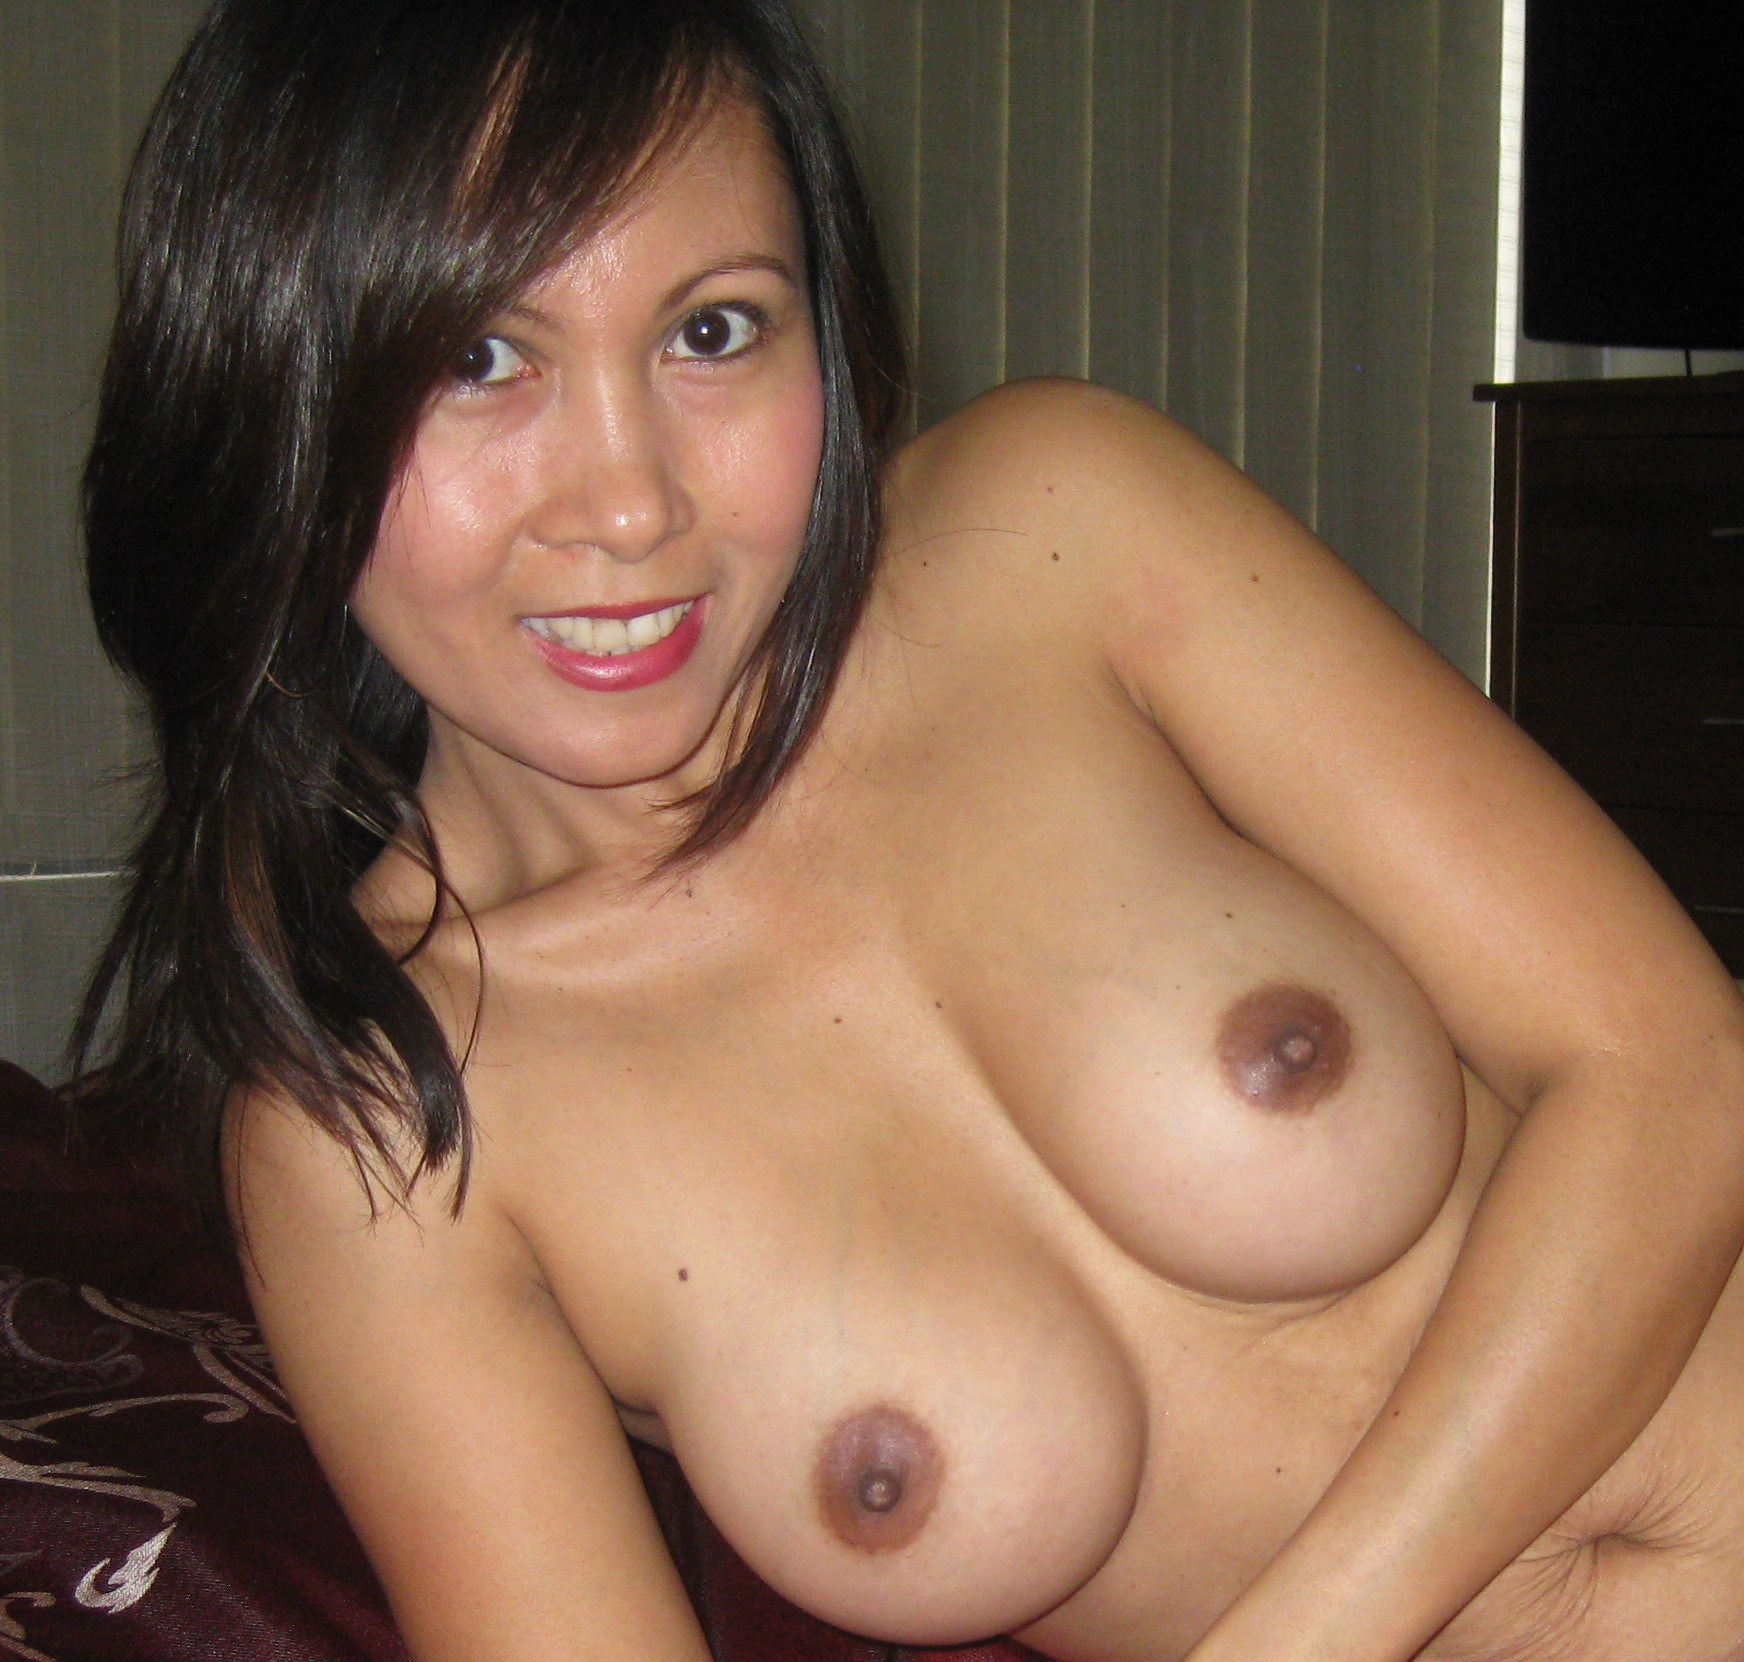 Adult sites showing lesbian females videos